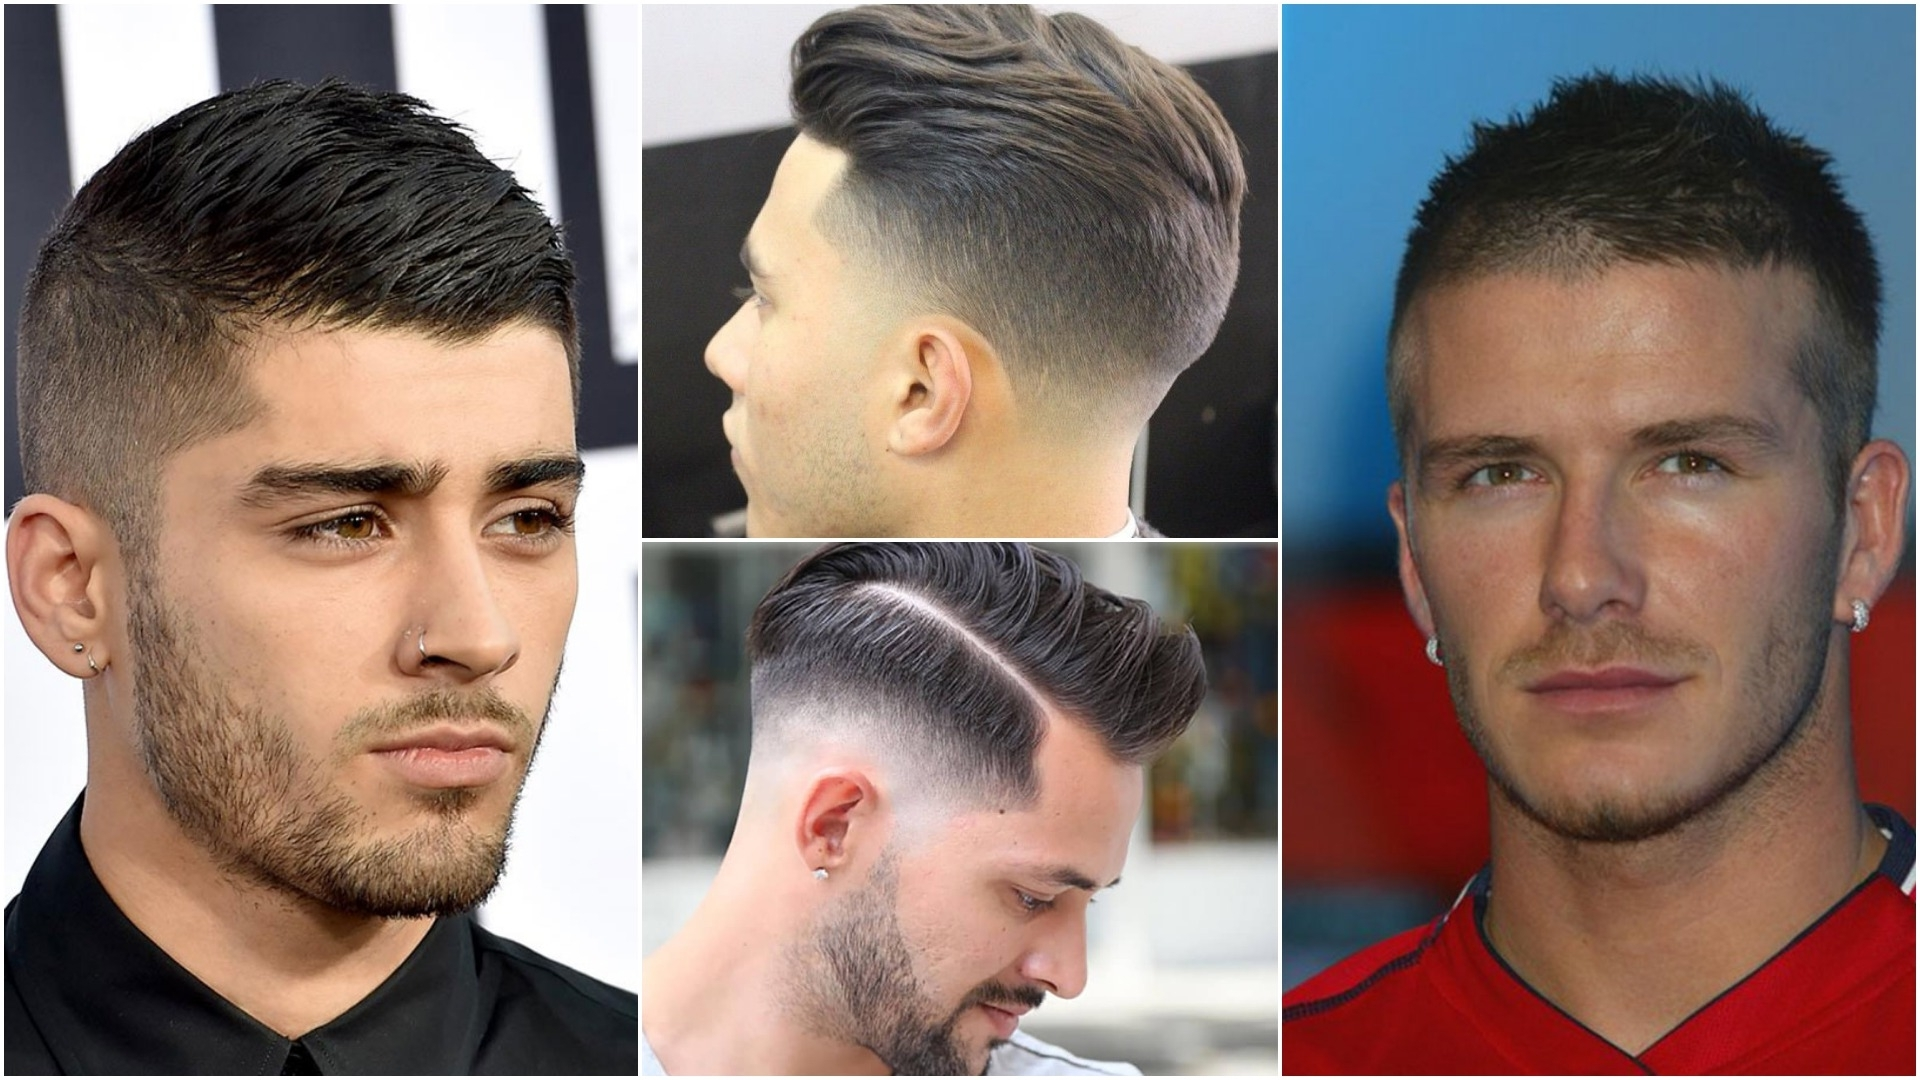 Popular Shaggy Fade Blonde Hairstyles With 25 Taper Fade Haircuts For Men To Look Awesome – Haircuts (View 16 of 20)